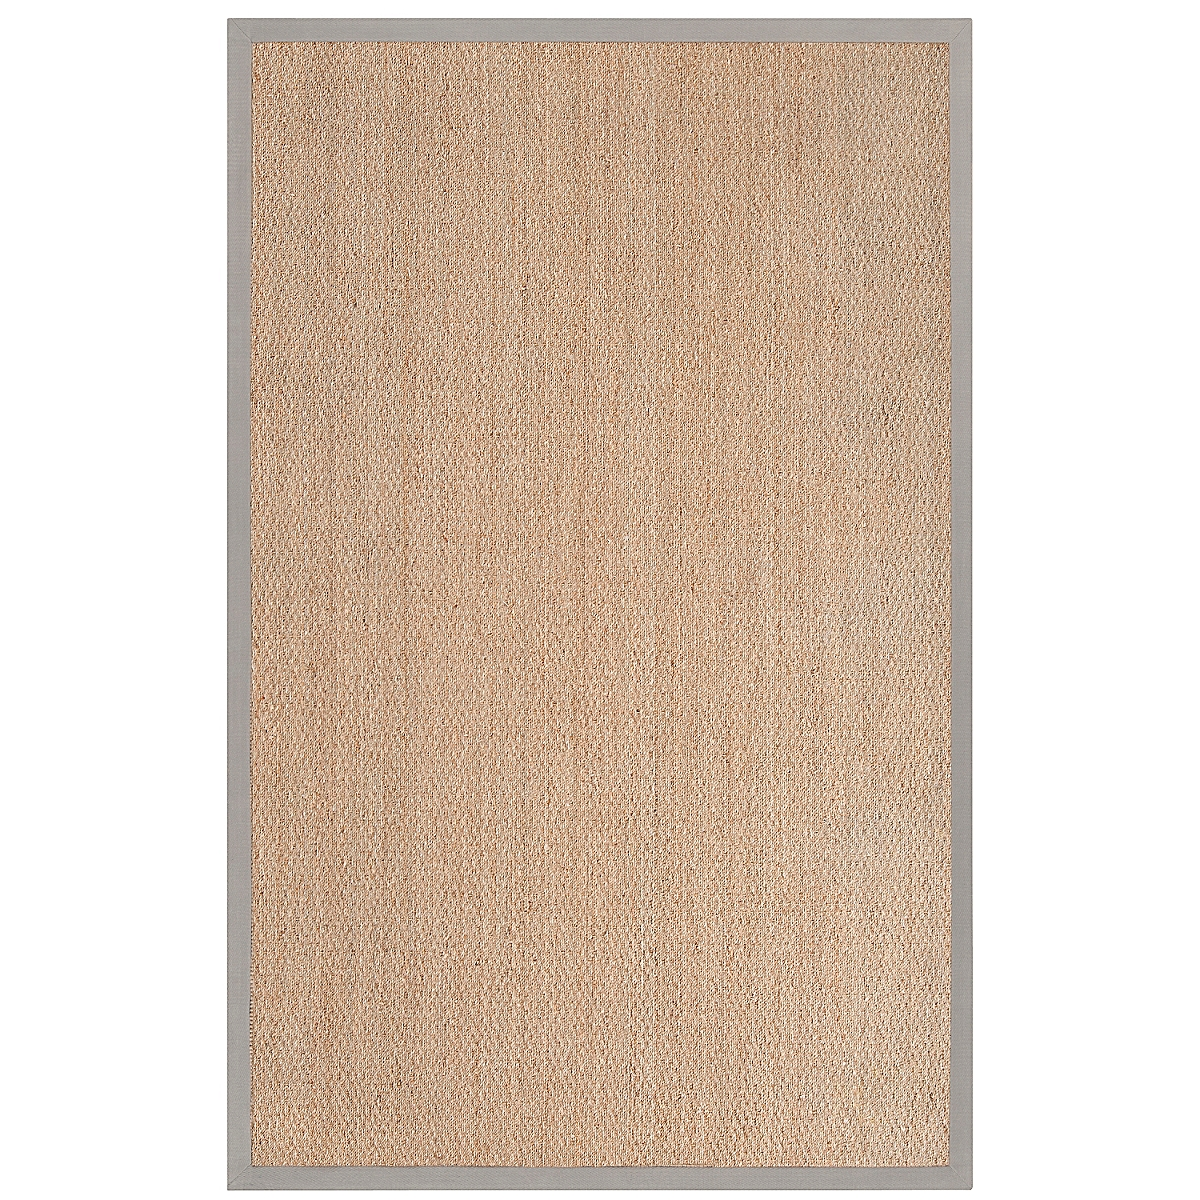 Classic Border Sisal: Oyster